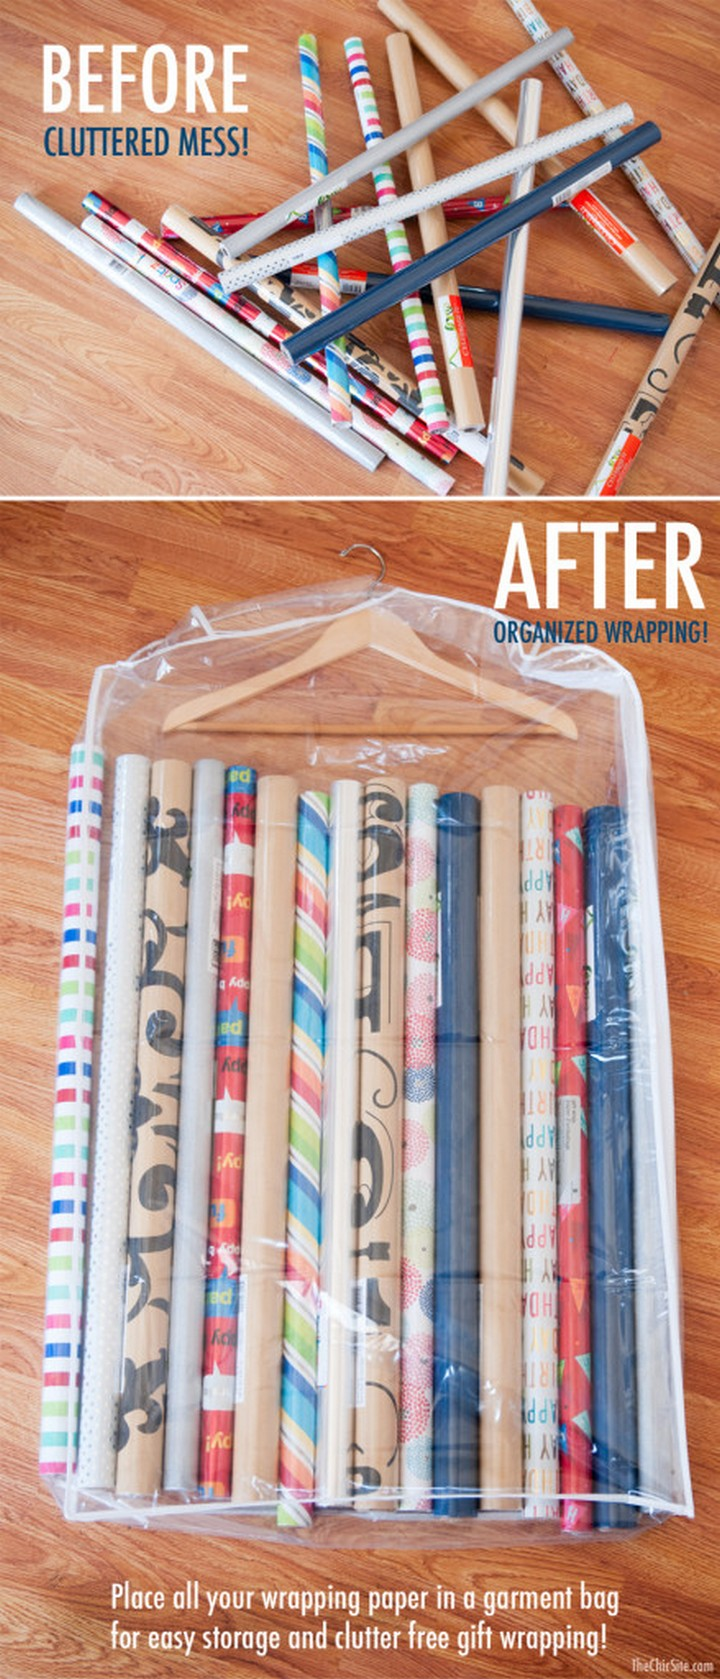 46 Useful Storage Ideas - Store all your wrapping paper in a garment bag.